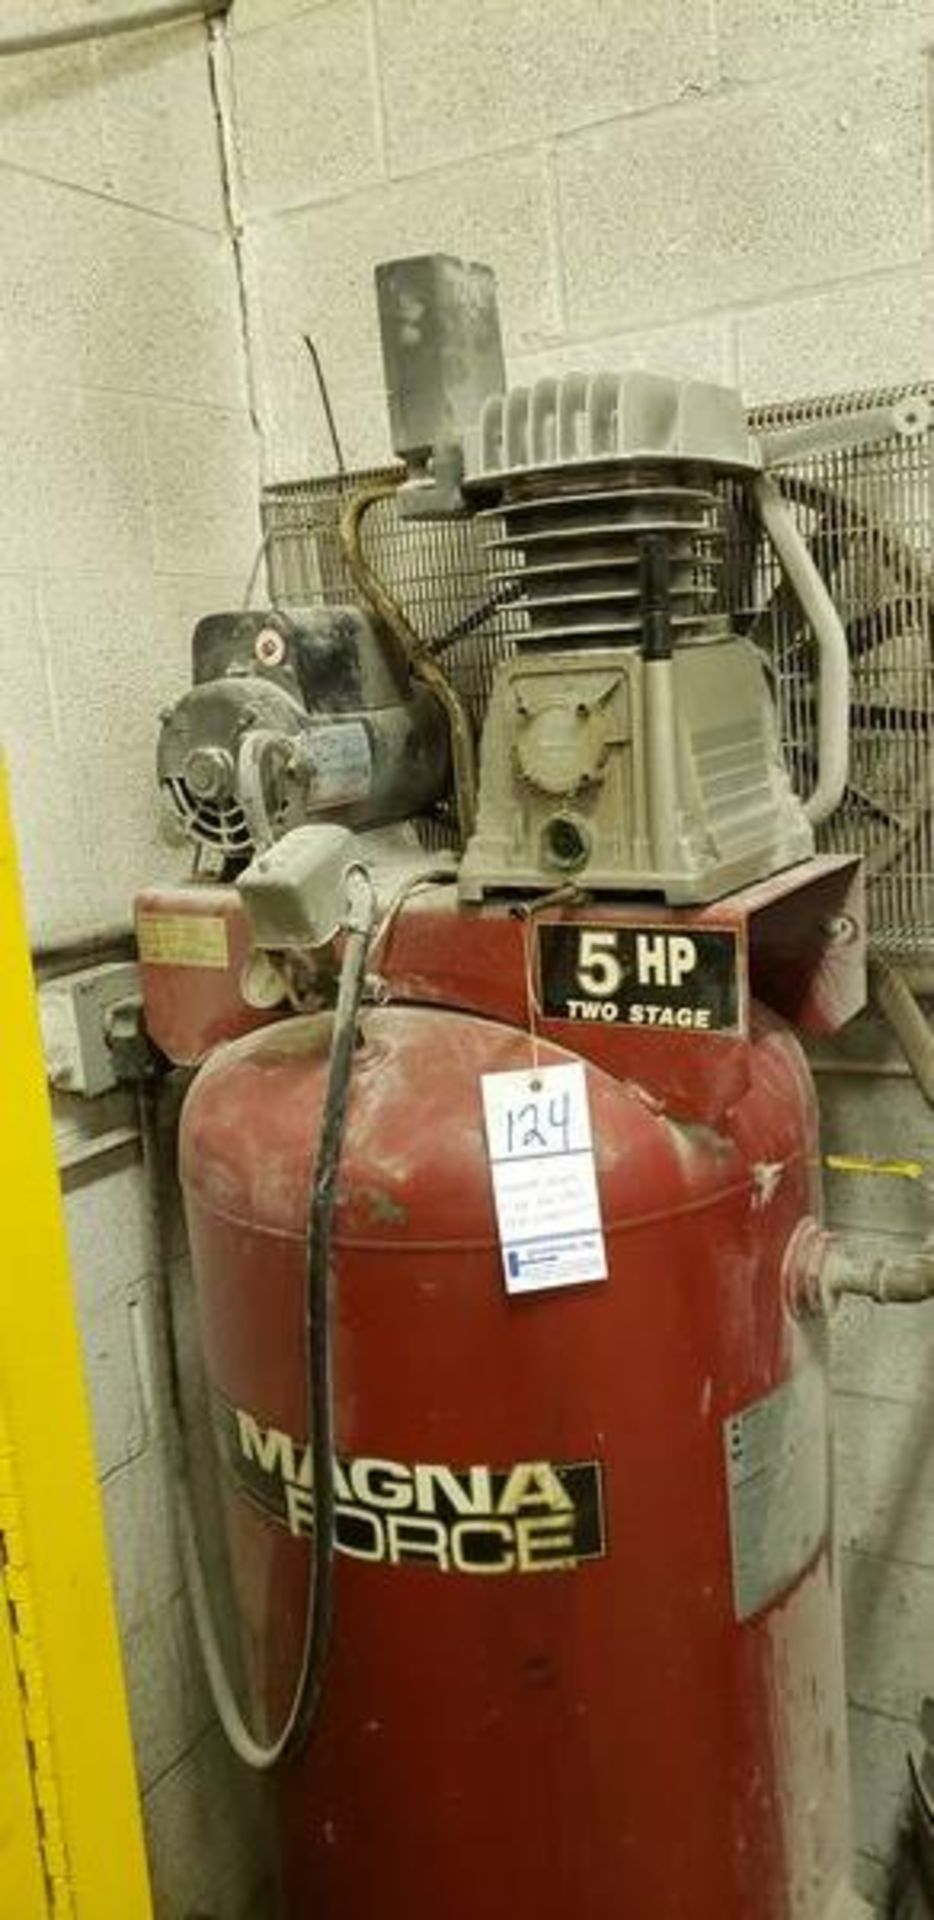 MAGNA FORCE 5HP TWO STAGE AIR COMPRESSOR - Image 2 of 5